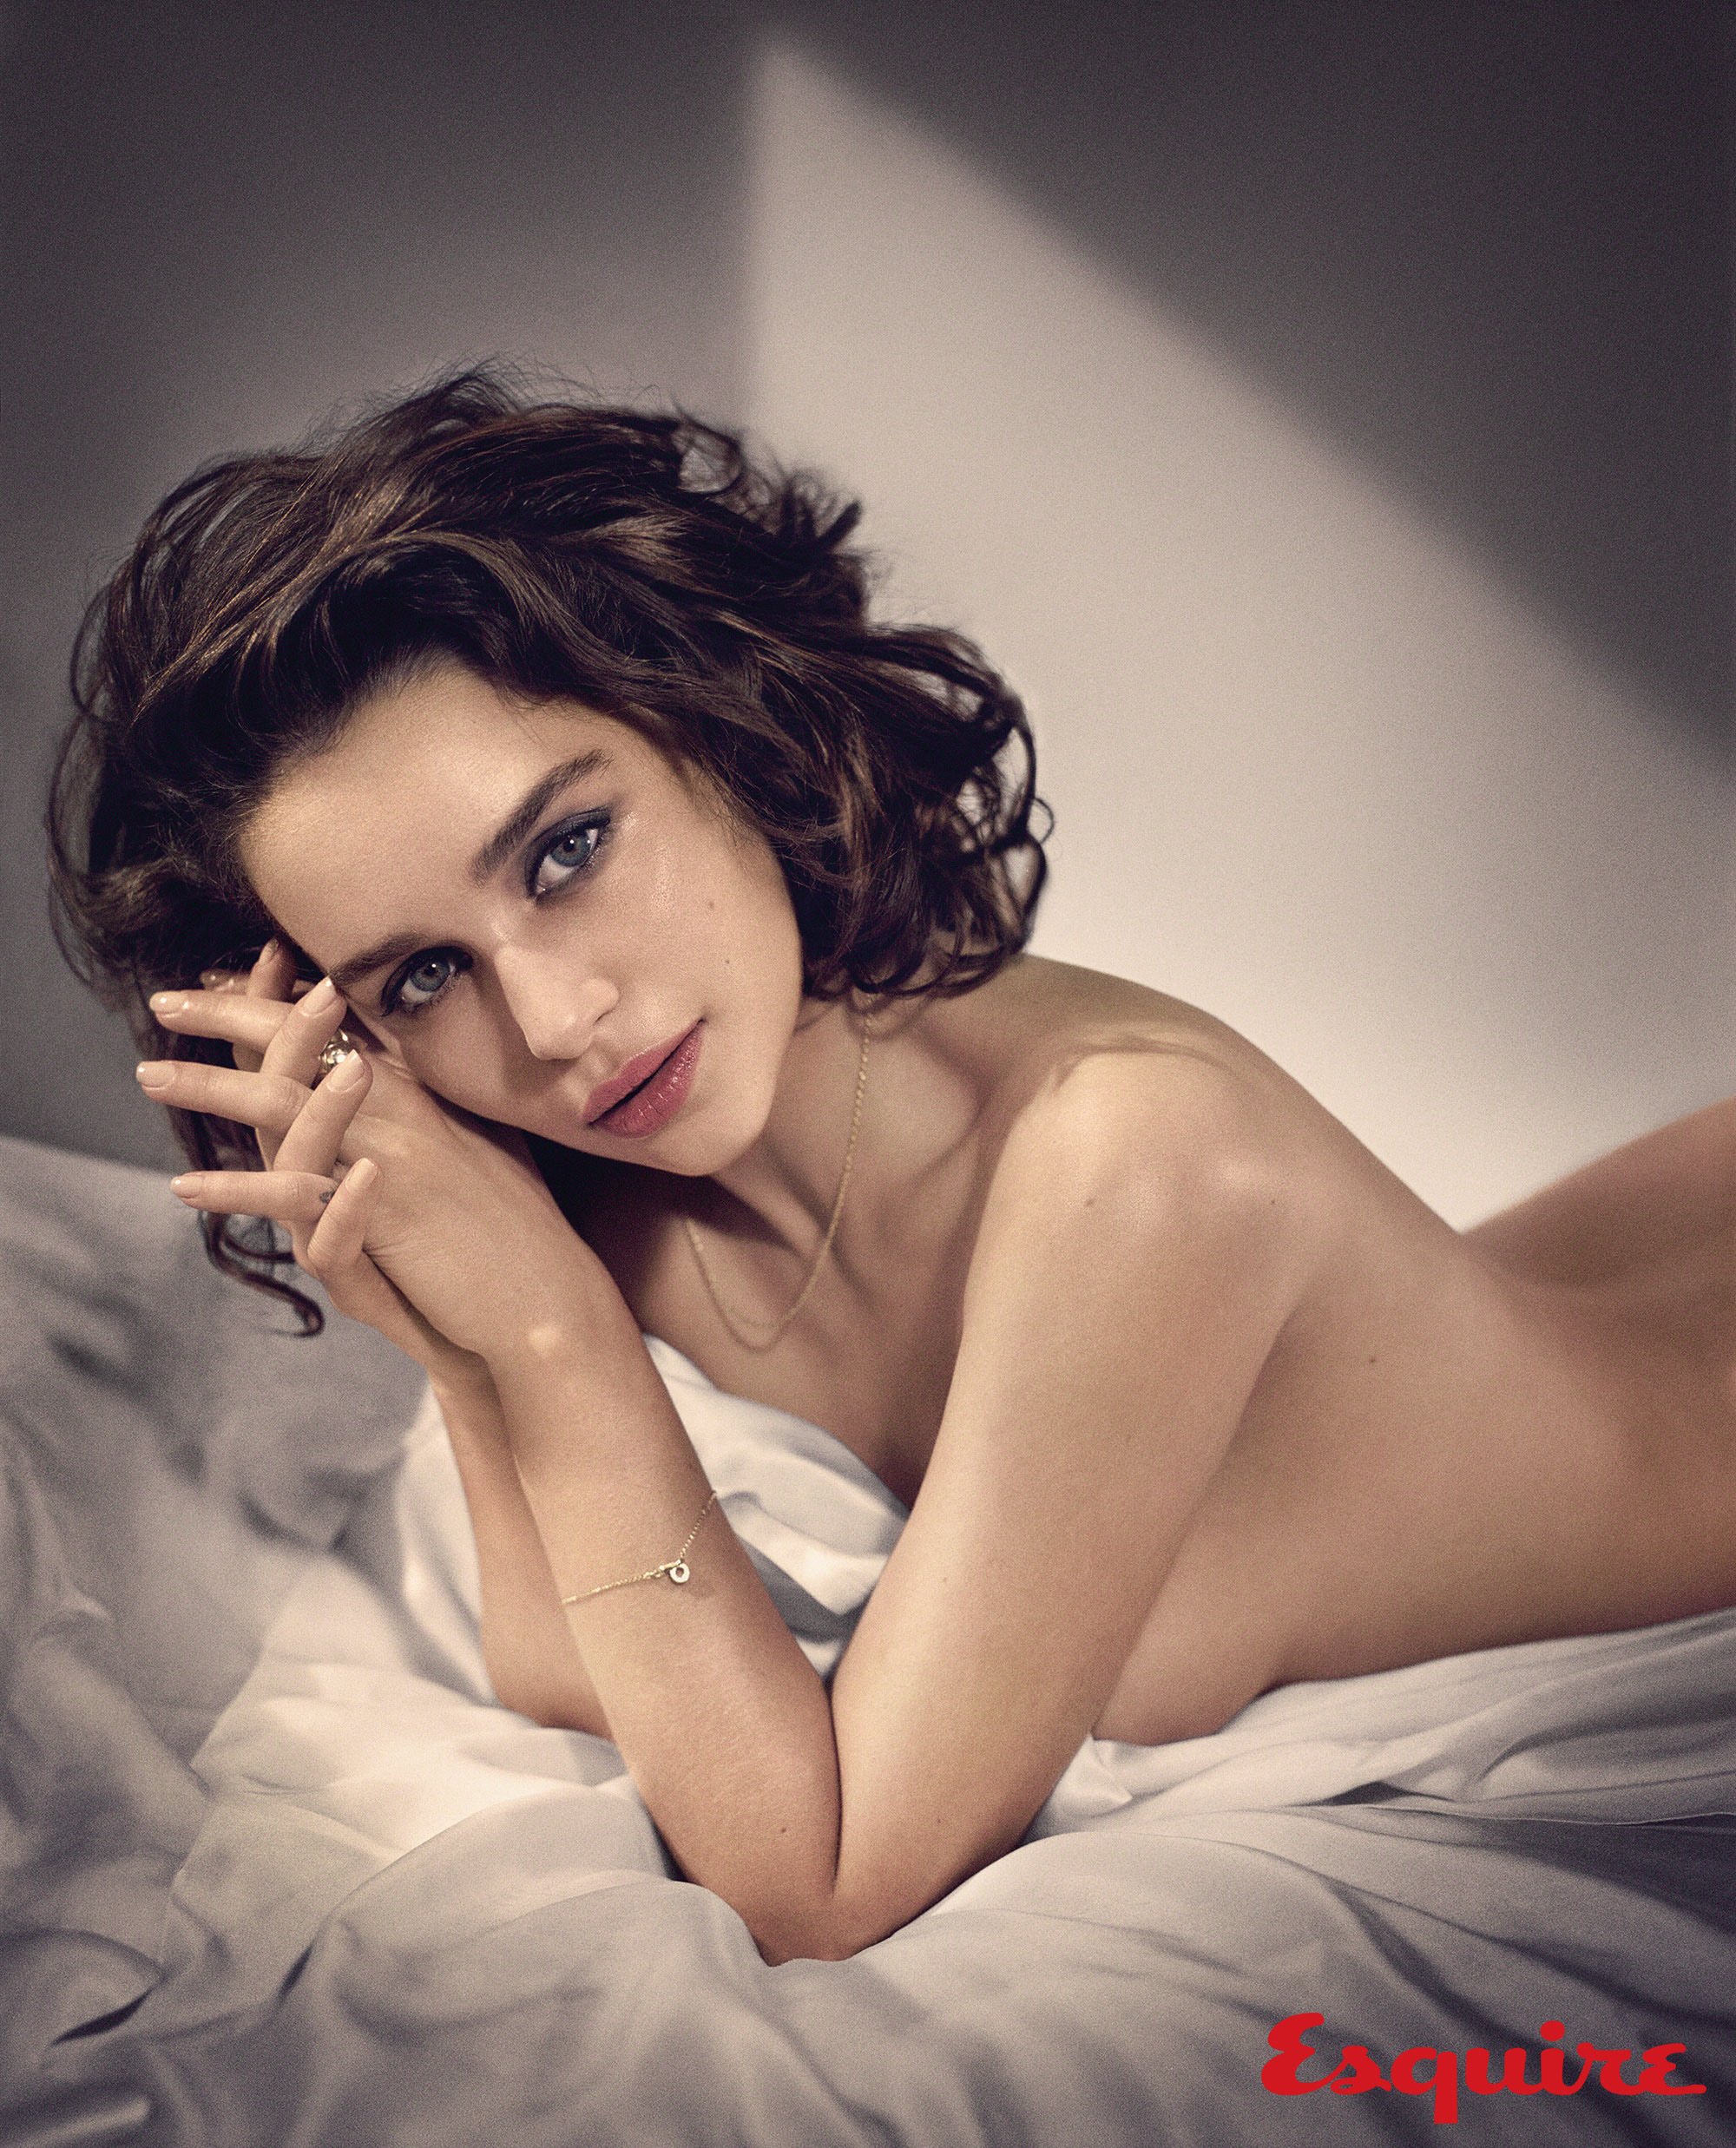 HIGH RES Esquire emilia-clarke-sexiest-woman-alive-2015 7